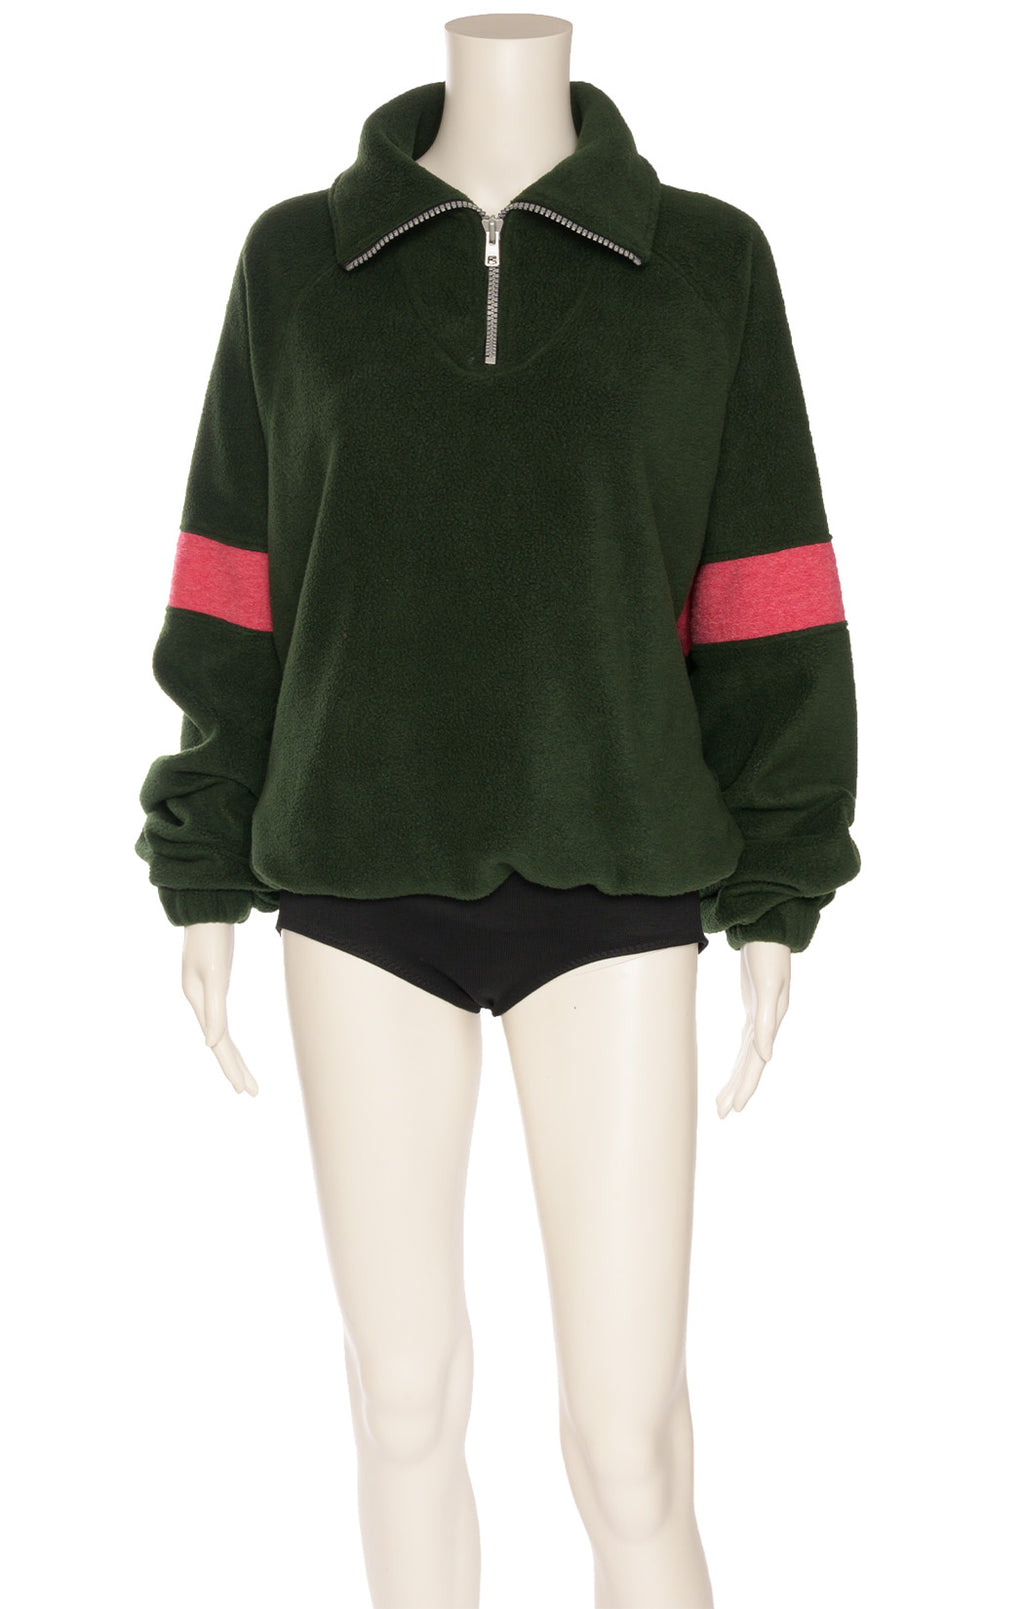 Green with pink polar type short zipper front pullover